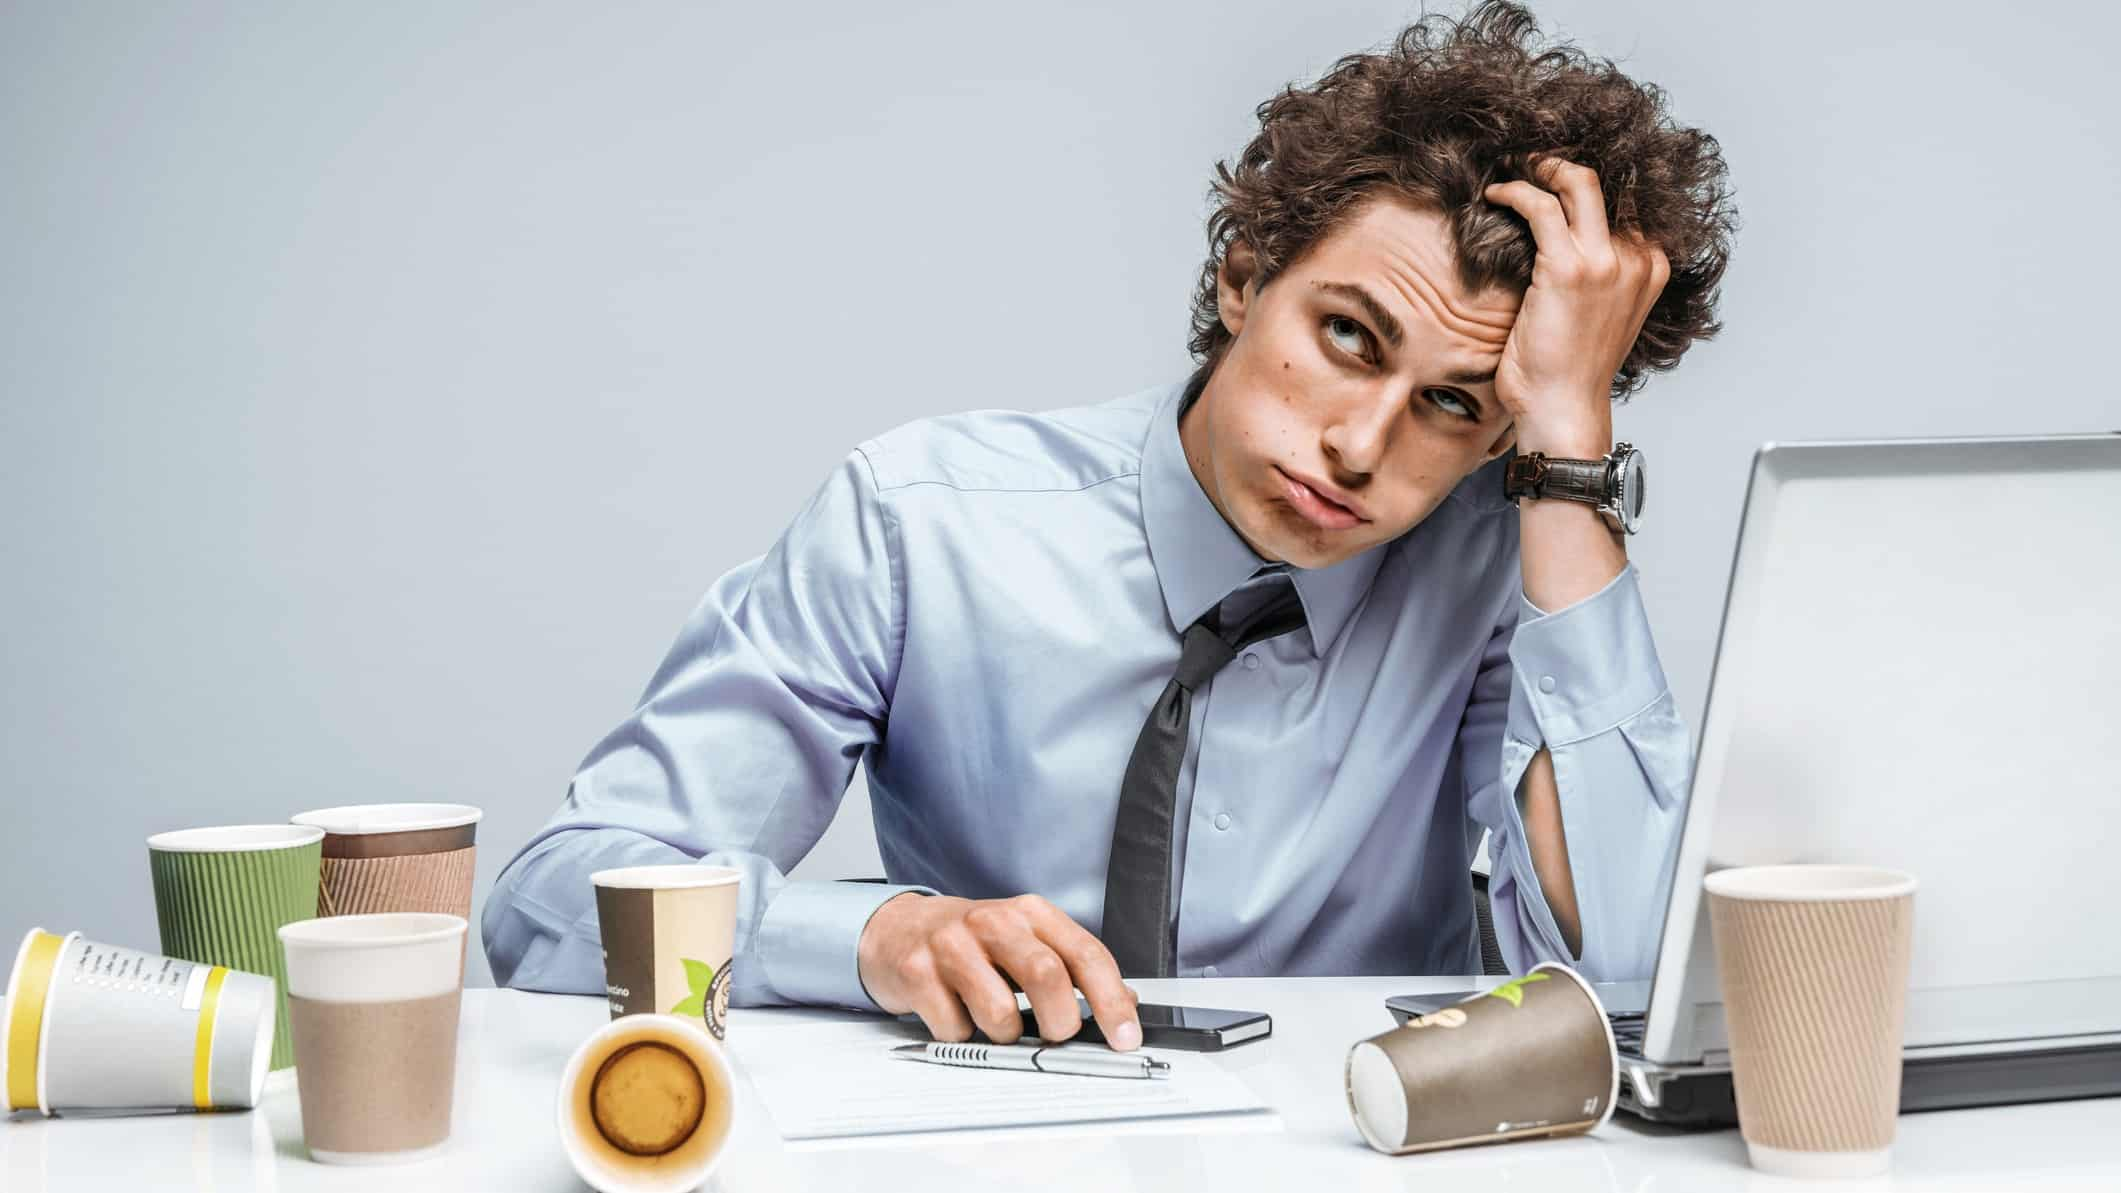 ASX 200 investor looking frustrated at falling share price whilst sitting at desk